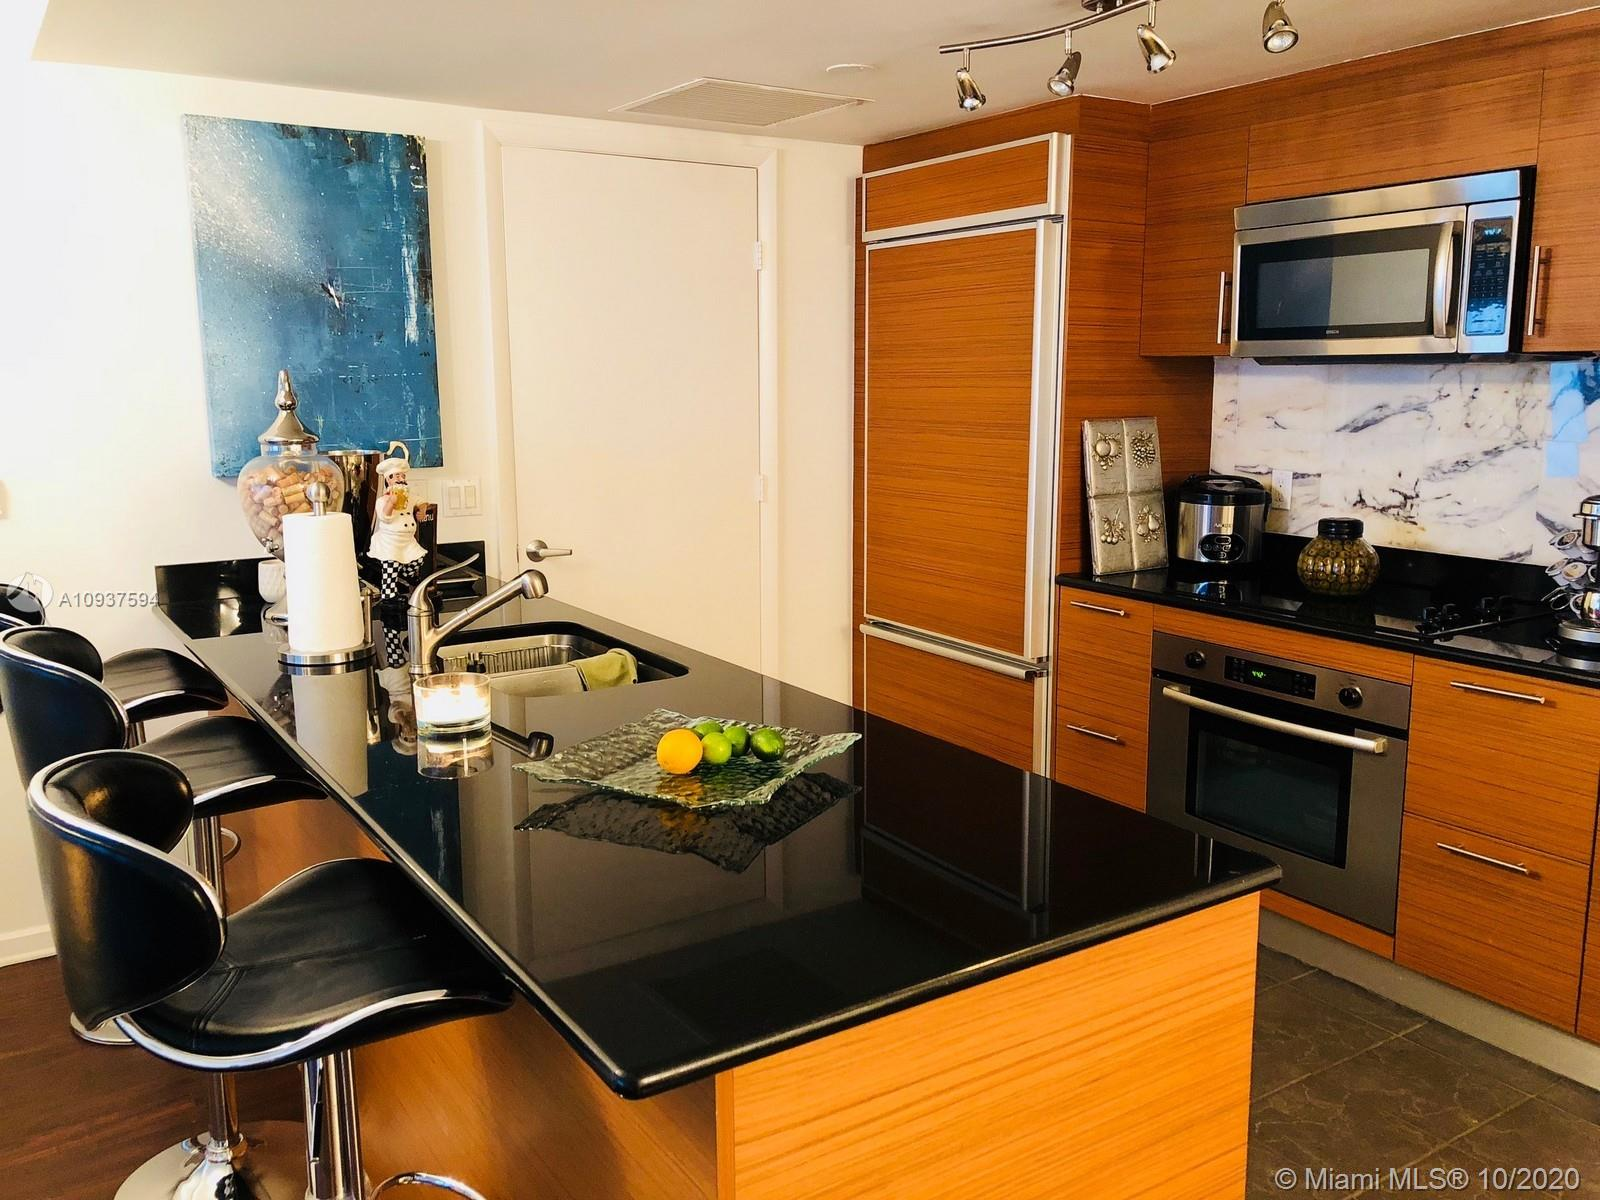 Beautiful unit available on spacious 2/2 + large DEN. The unit has been updated with wood floors, built-in closets and shades/curtains in all rooms as well with a marble backsplash in the kitchen. Direct and unobstructed views of the Biscayne Bay. The unit is available with furniture for $4,100.00/month. Building offers A class amenities. MOST COMPETITIVE RATE in the 04/08 LINE.